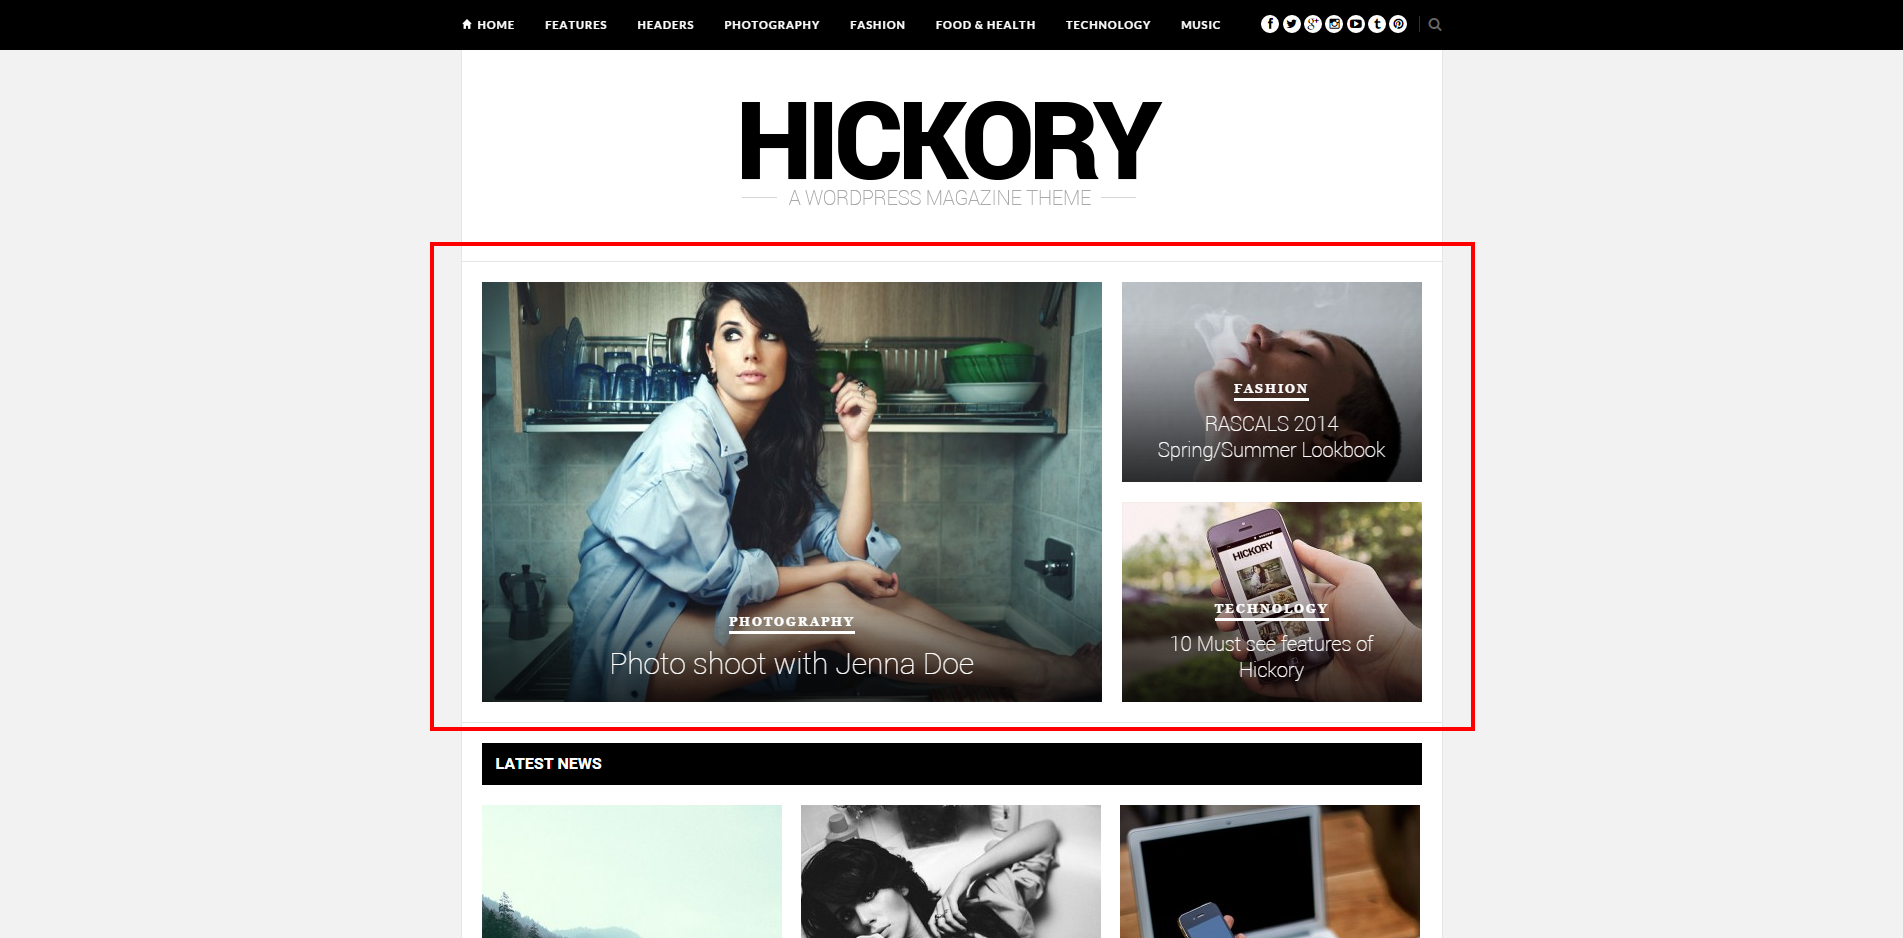 Hickory Featured Area Screenshot #1